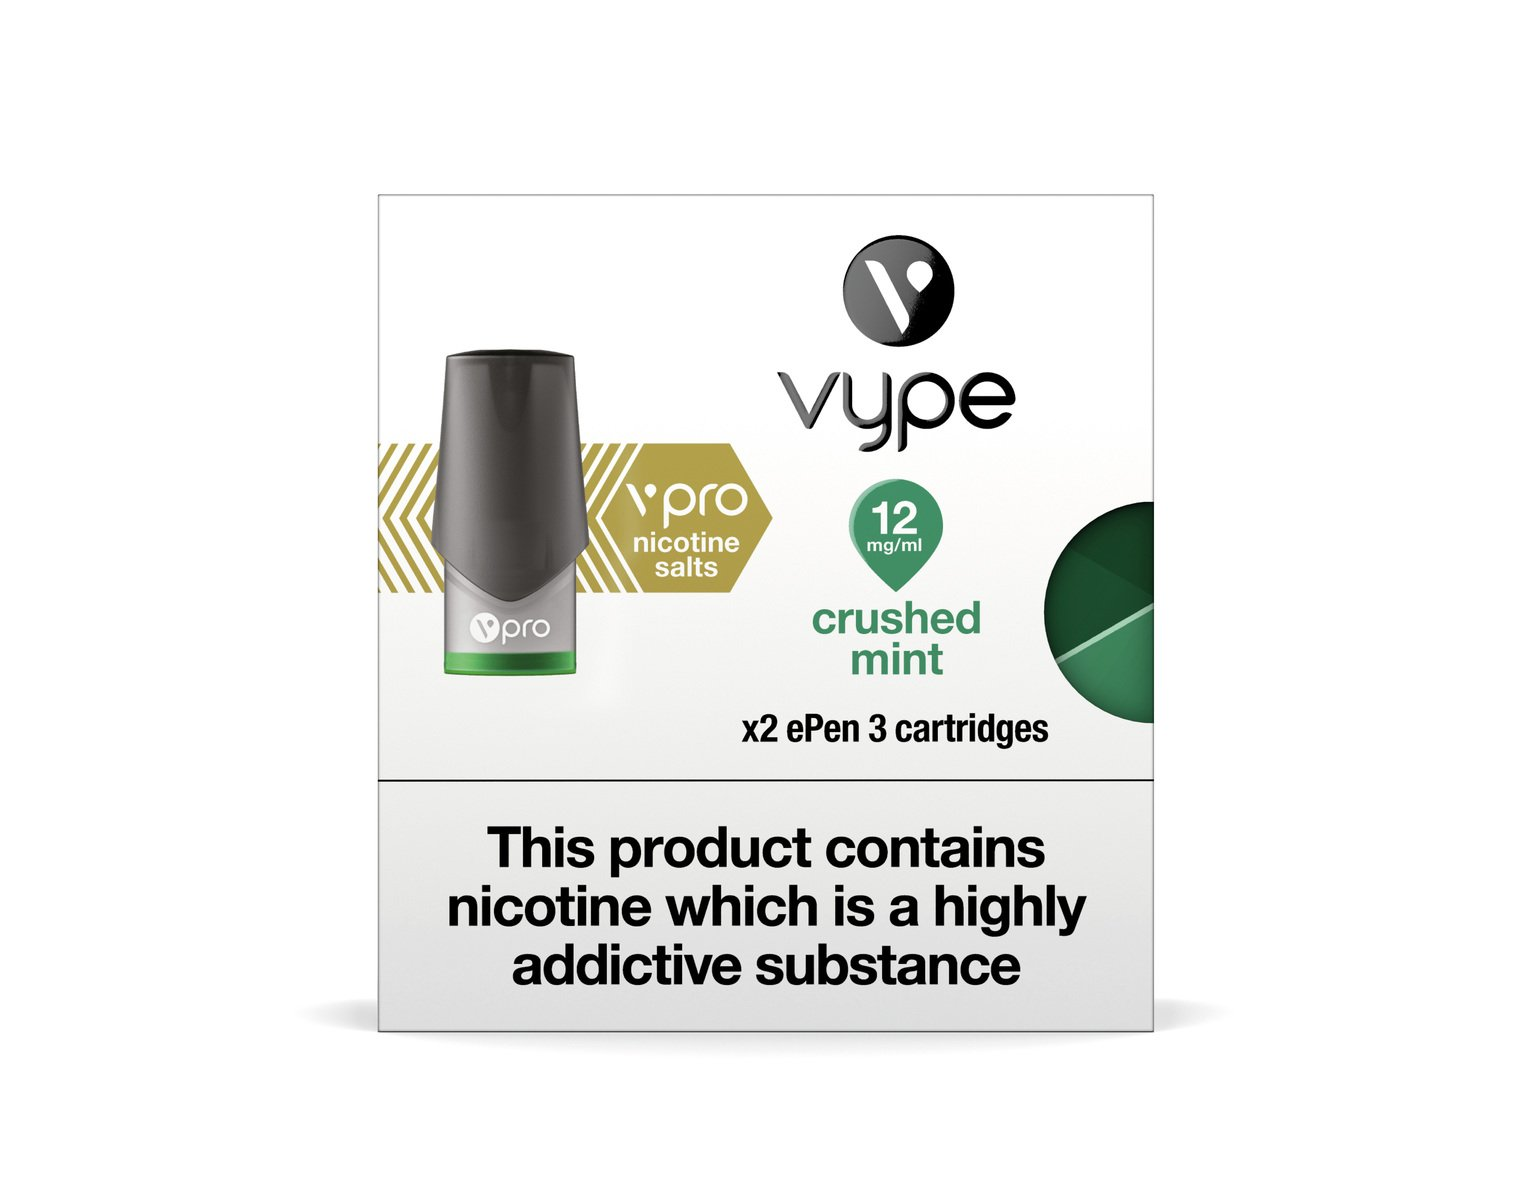 Vype ePen 3 vPro PODs Crushed Mint 12mg